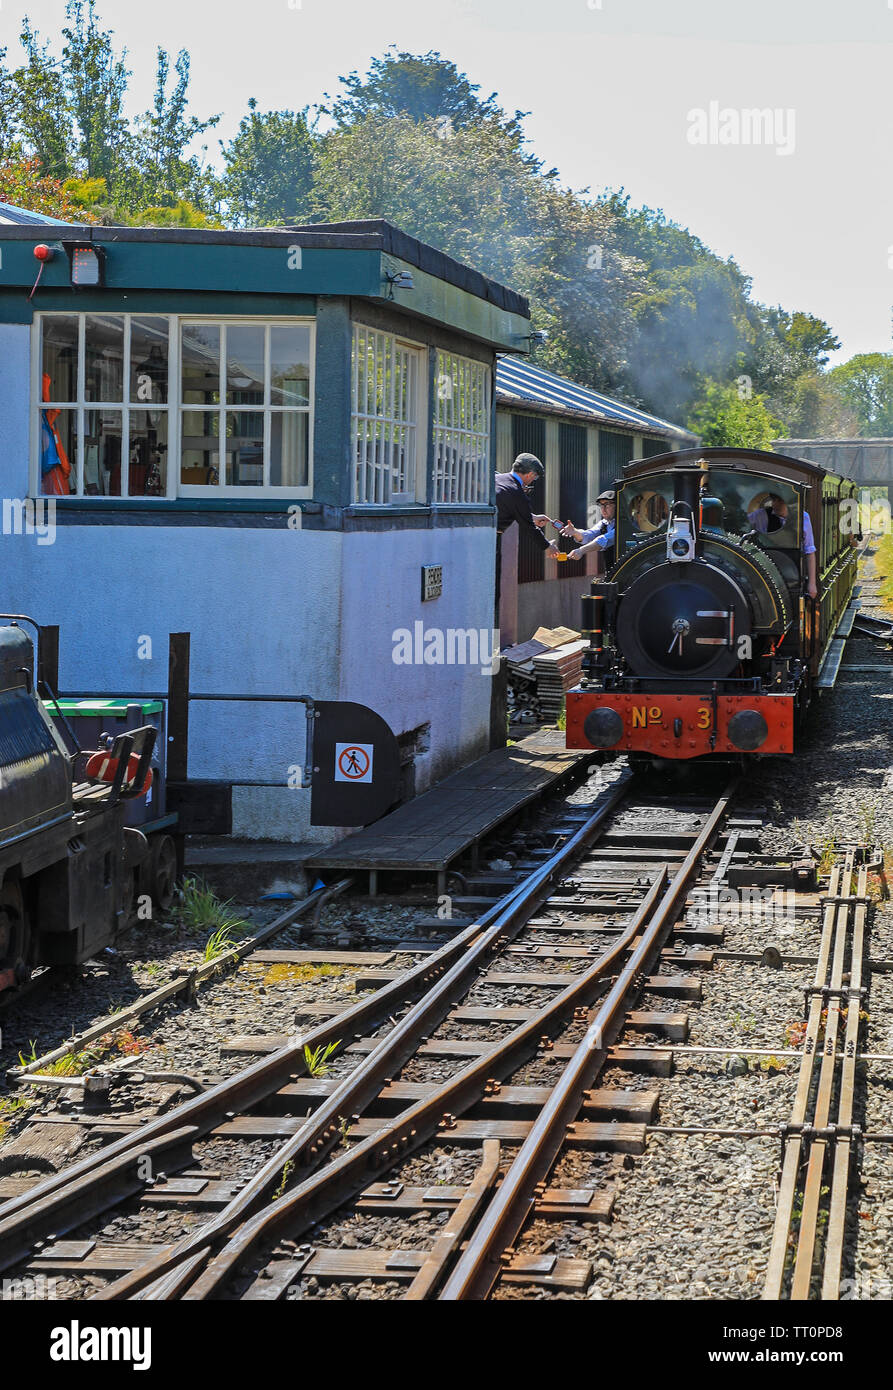 The driver of Steam engine number 3, 'Sir Haydn' exchanging or passing a token to the signalman on the Talyllyn Railway, Gwynedd, Wales, UK - Stock Image